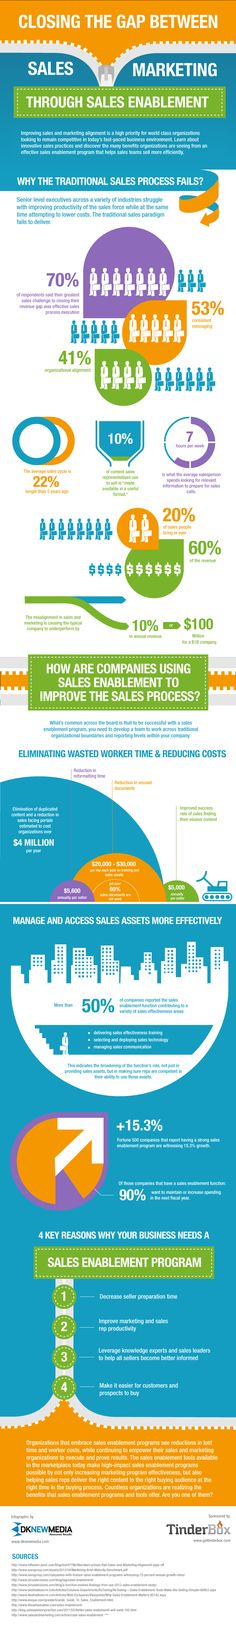 Closing the Gap Between Sales & Marketing Through Sales Enablement [Infographic] Sales And Marketing Strategy, Marketing Automation, Marketing Quotes, Inbound Marketing, Business Marketing, Content Marketing, Internet Marketing, Online Marketing, Marketing Technology